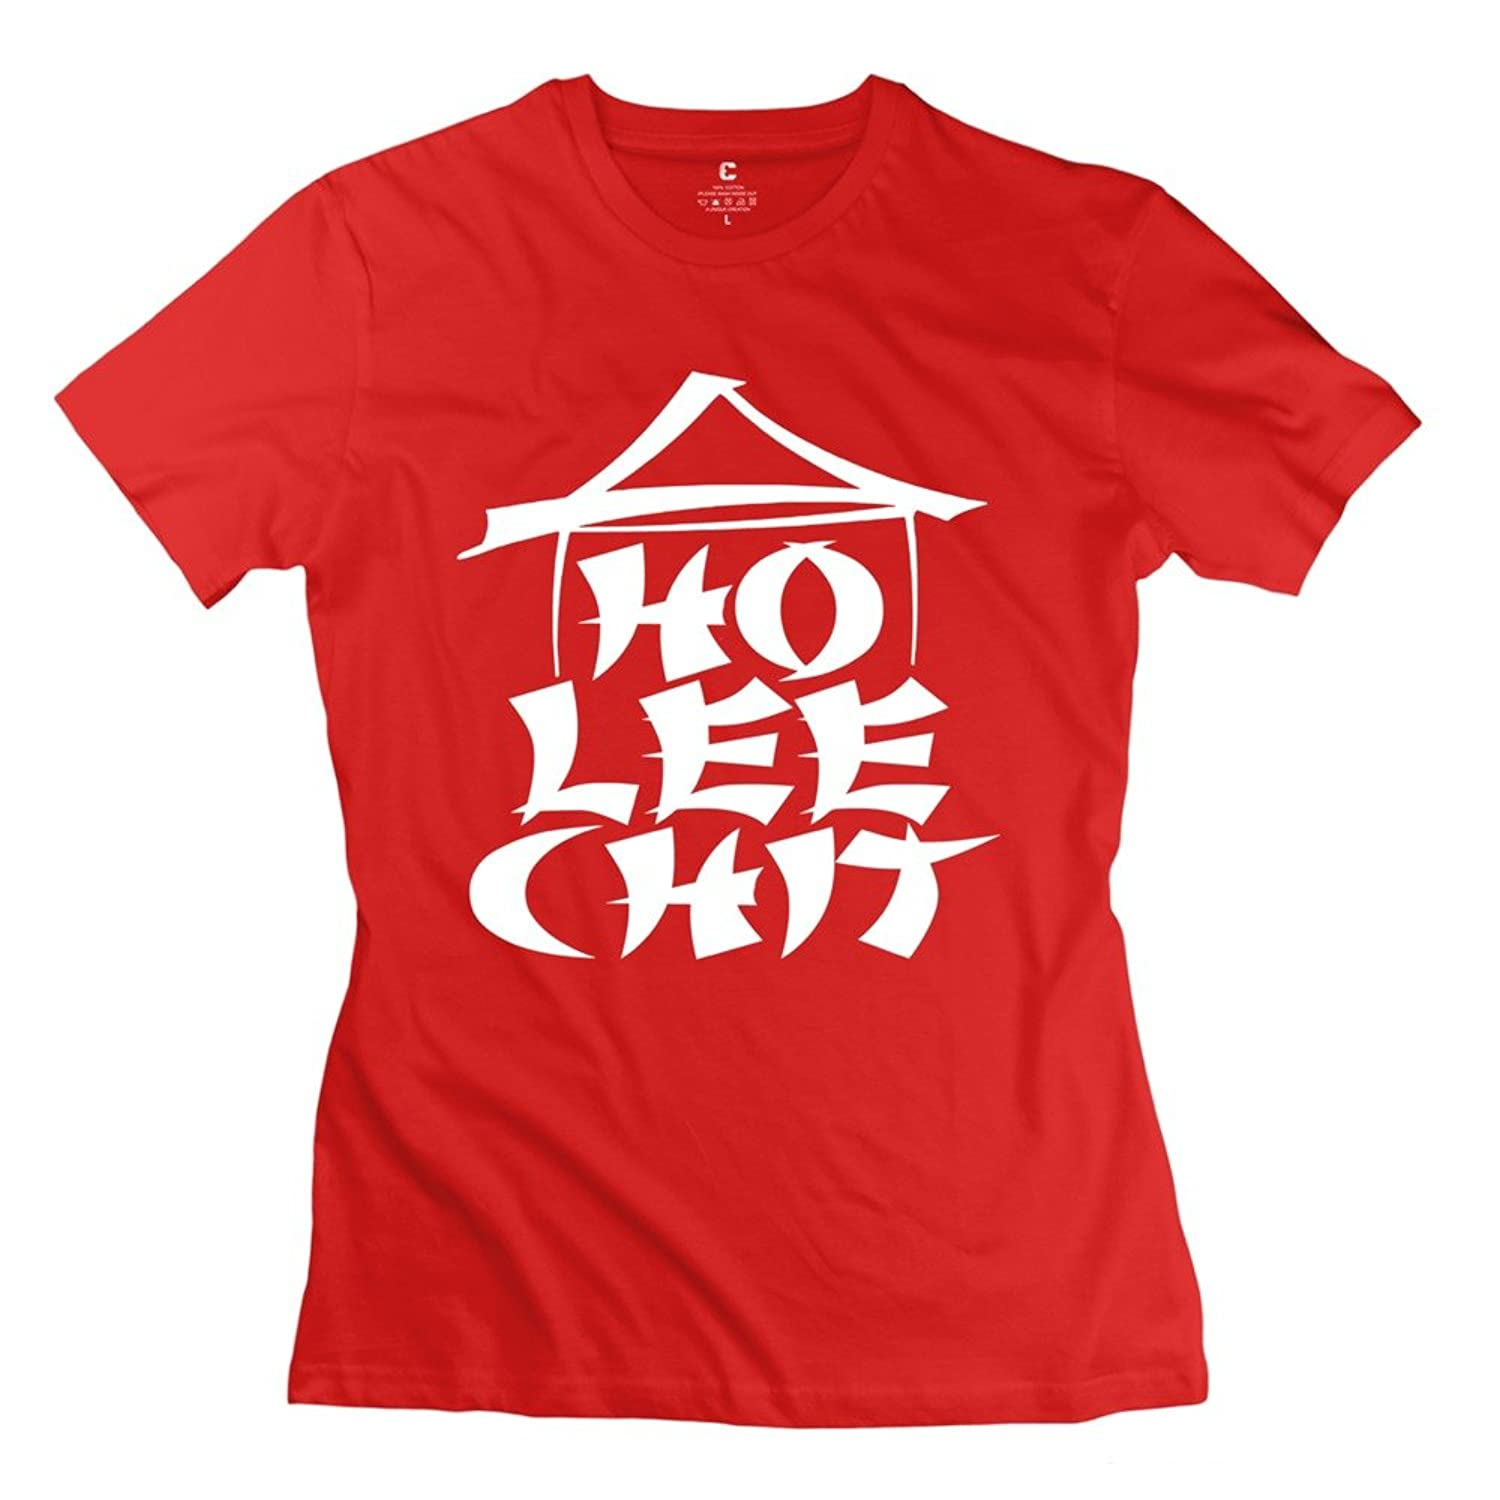 ZZY Cute LEEHO LEE CHIT T Shirt - Women's Tshirt DeepHeather клей пва фирмы leeho в москве